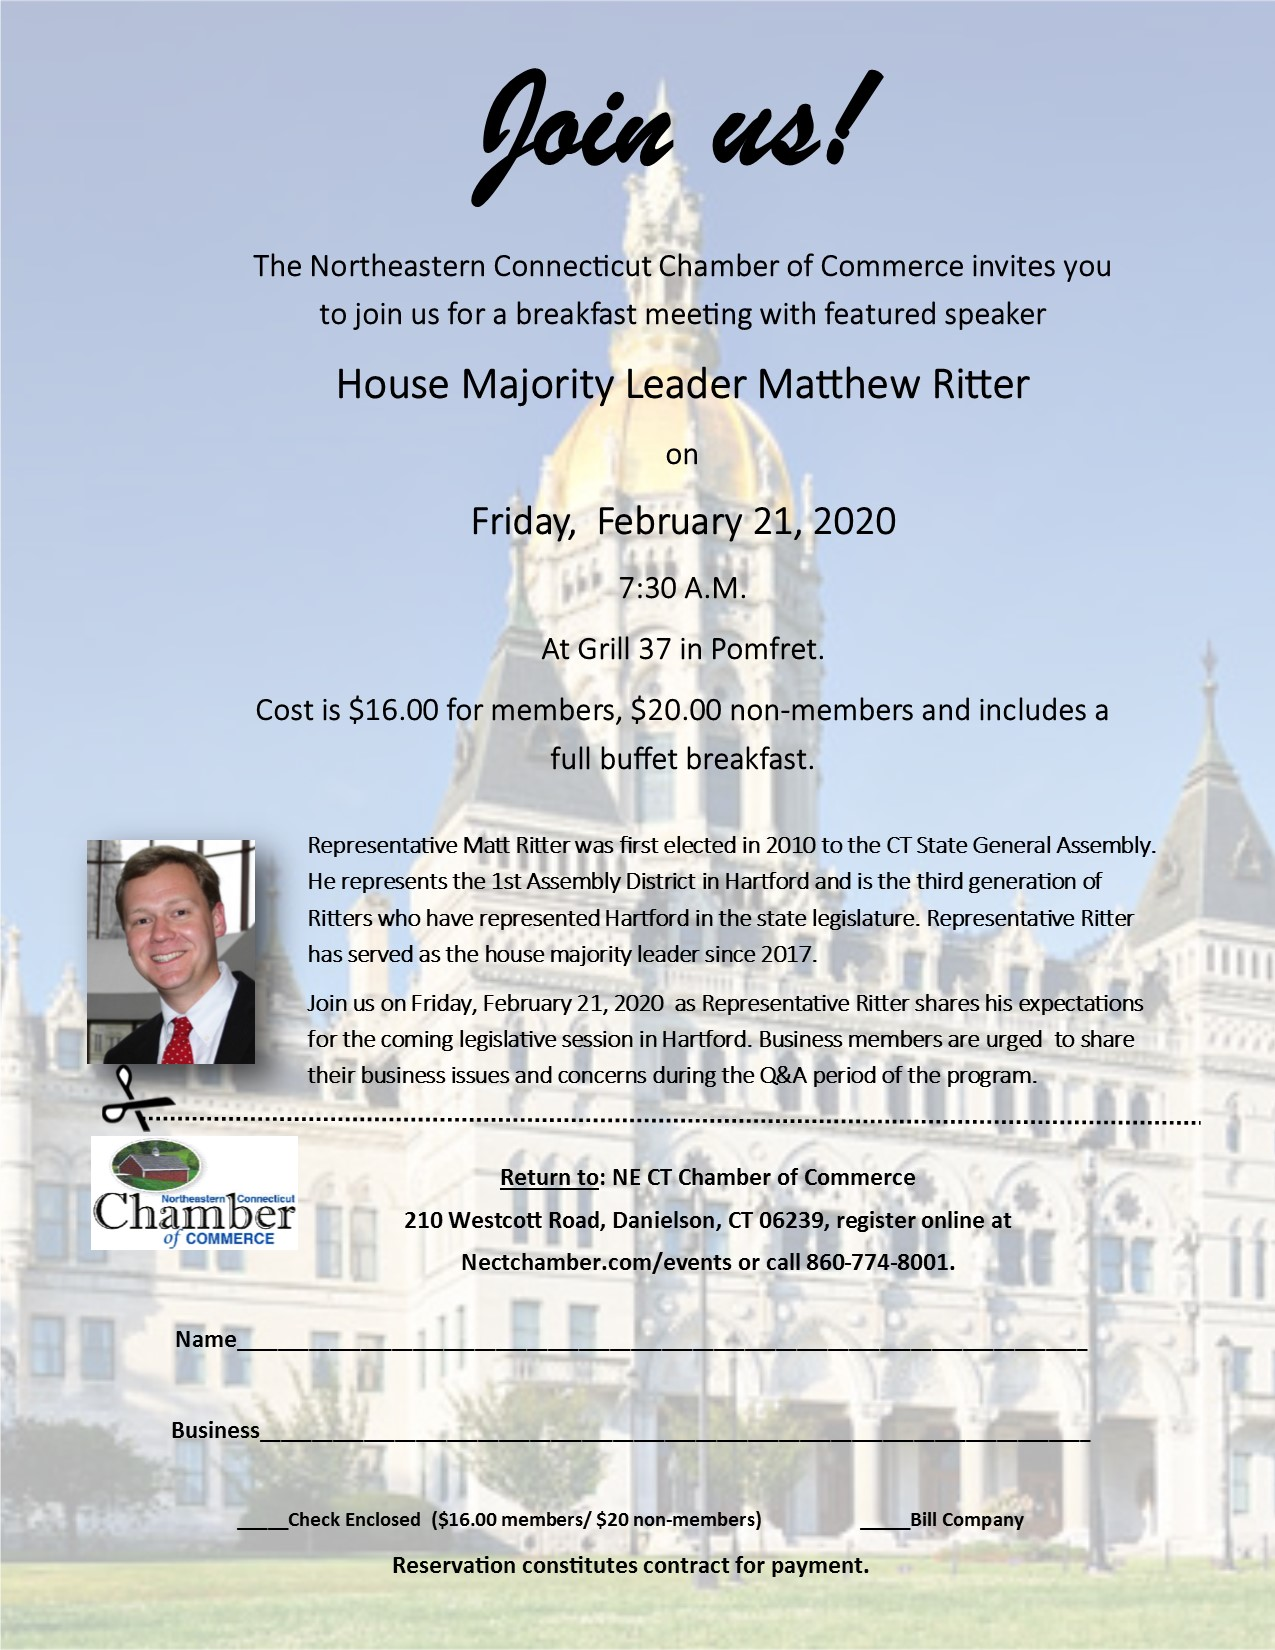 Chamber Breakfast with House Majority Leader Matthew Ritter @ Grill 37